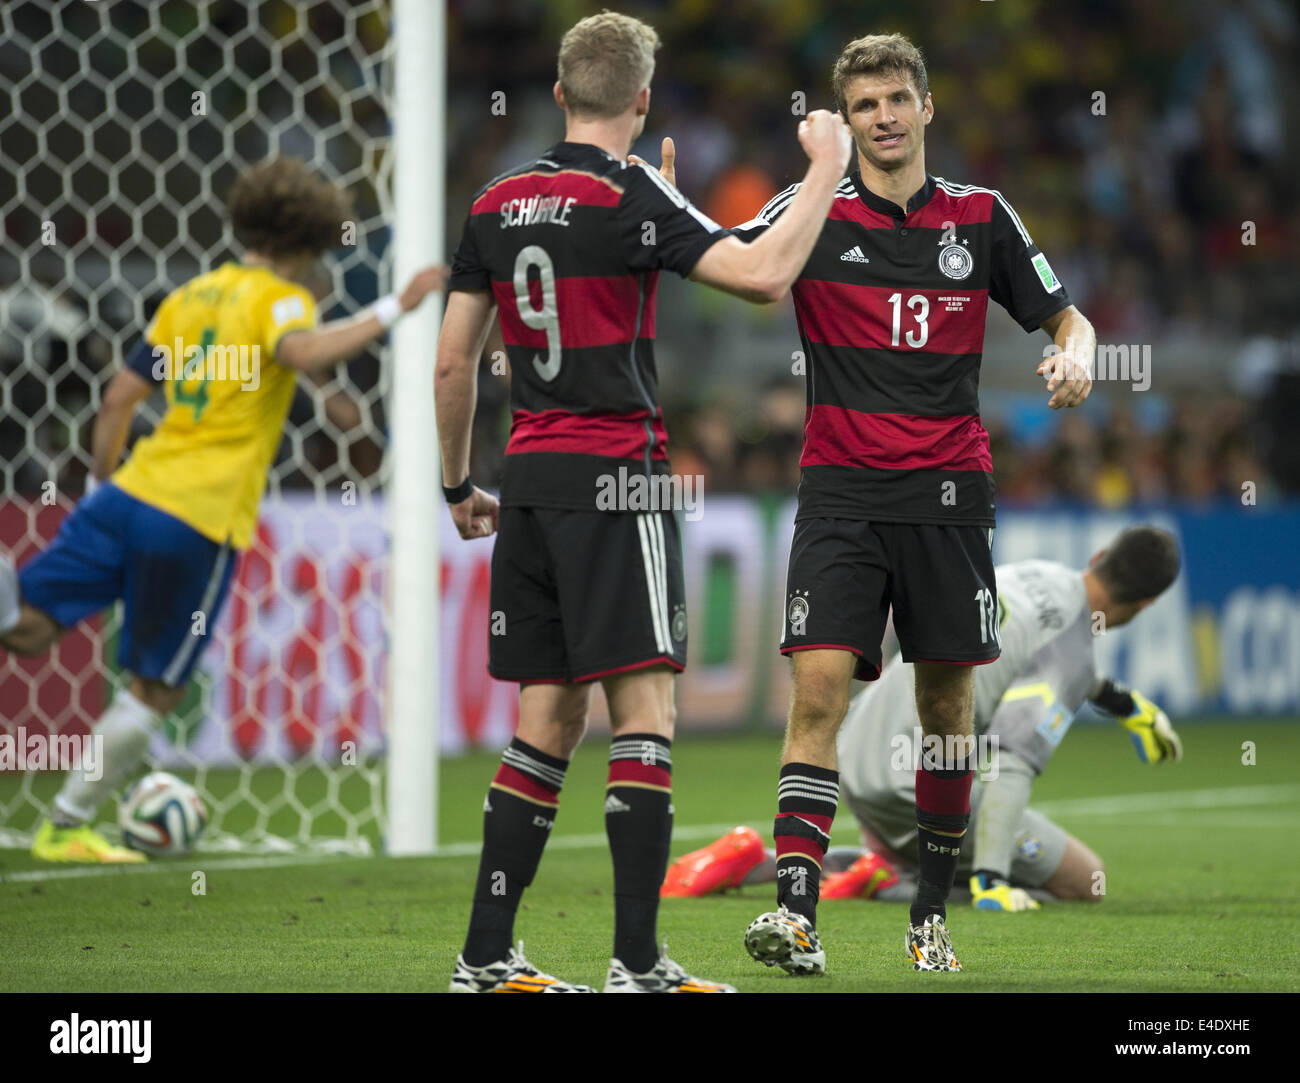 Belo Horizonte Brazil 8th July 2014 Schurrle and Thomas Muller